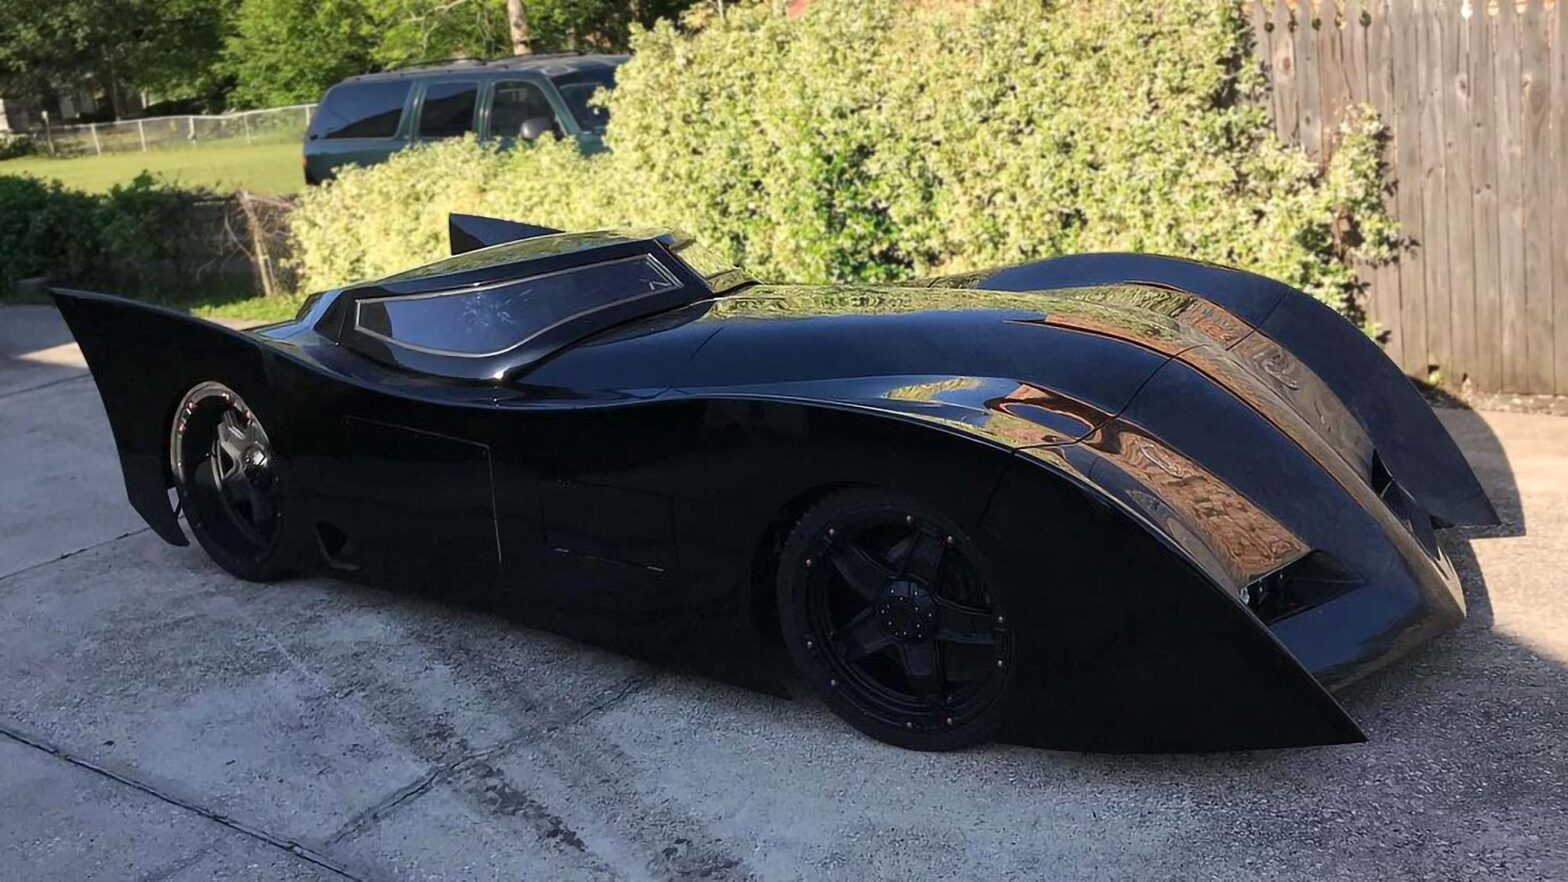 Real Life New Batman Adventures Batmobile